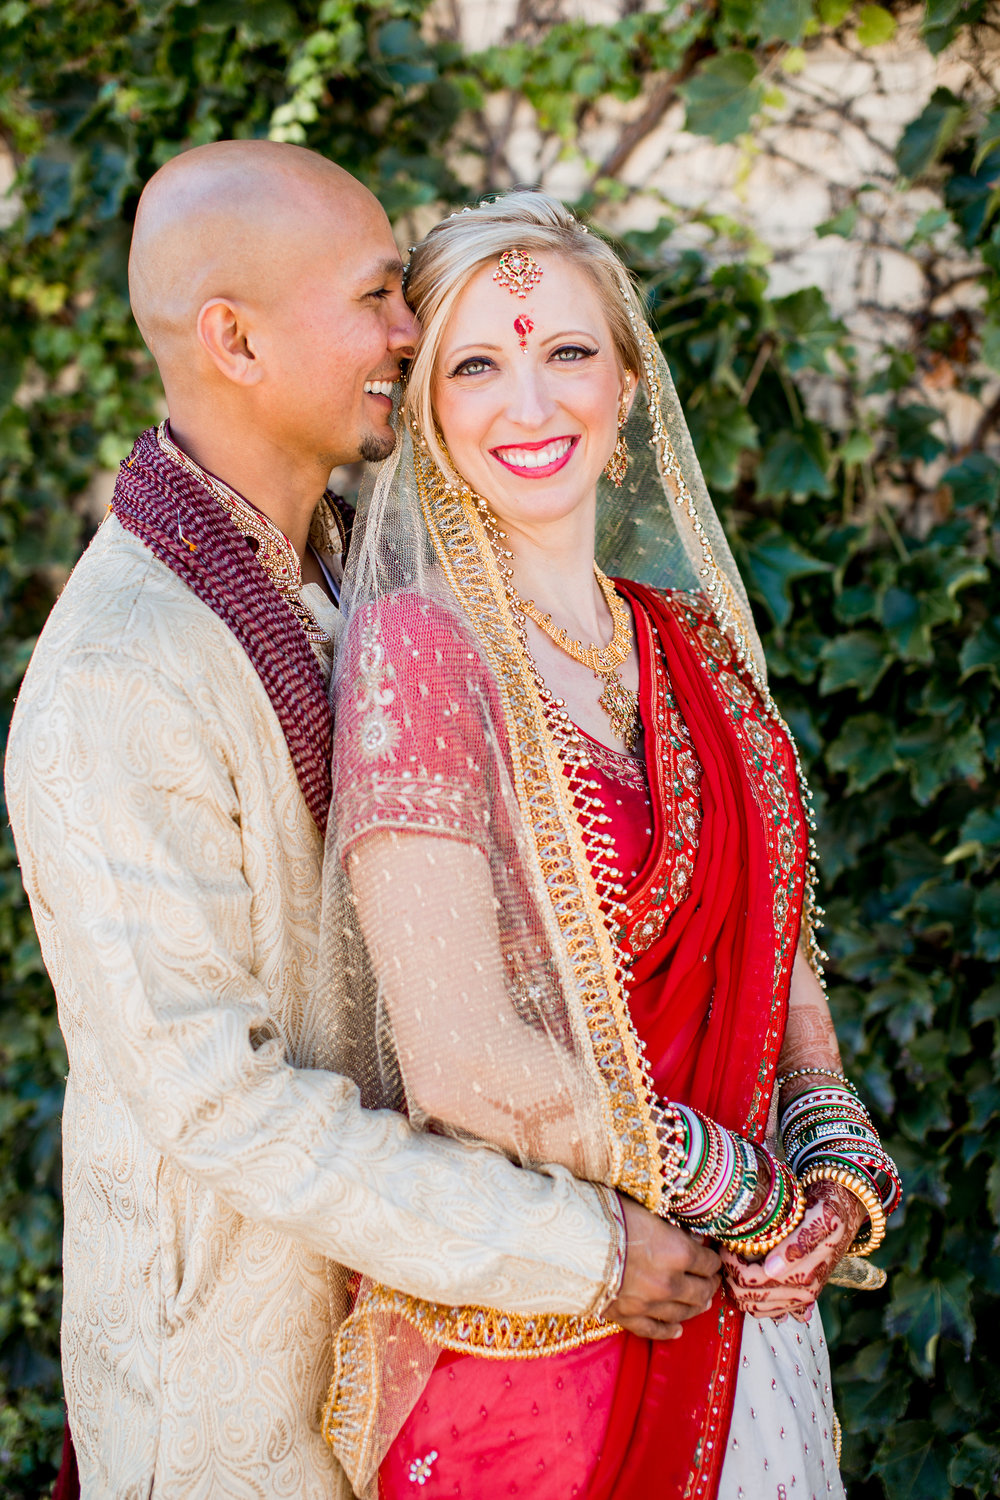 Hindu-American Wedding